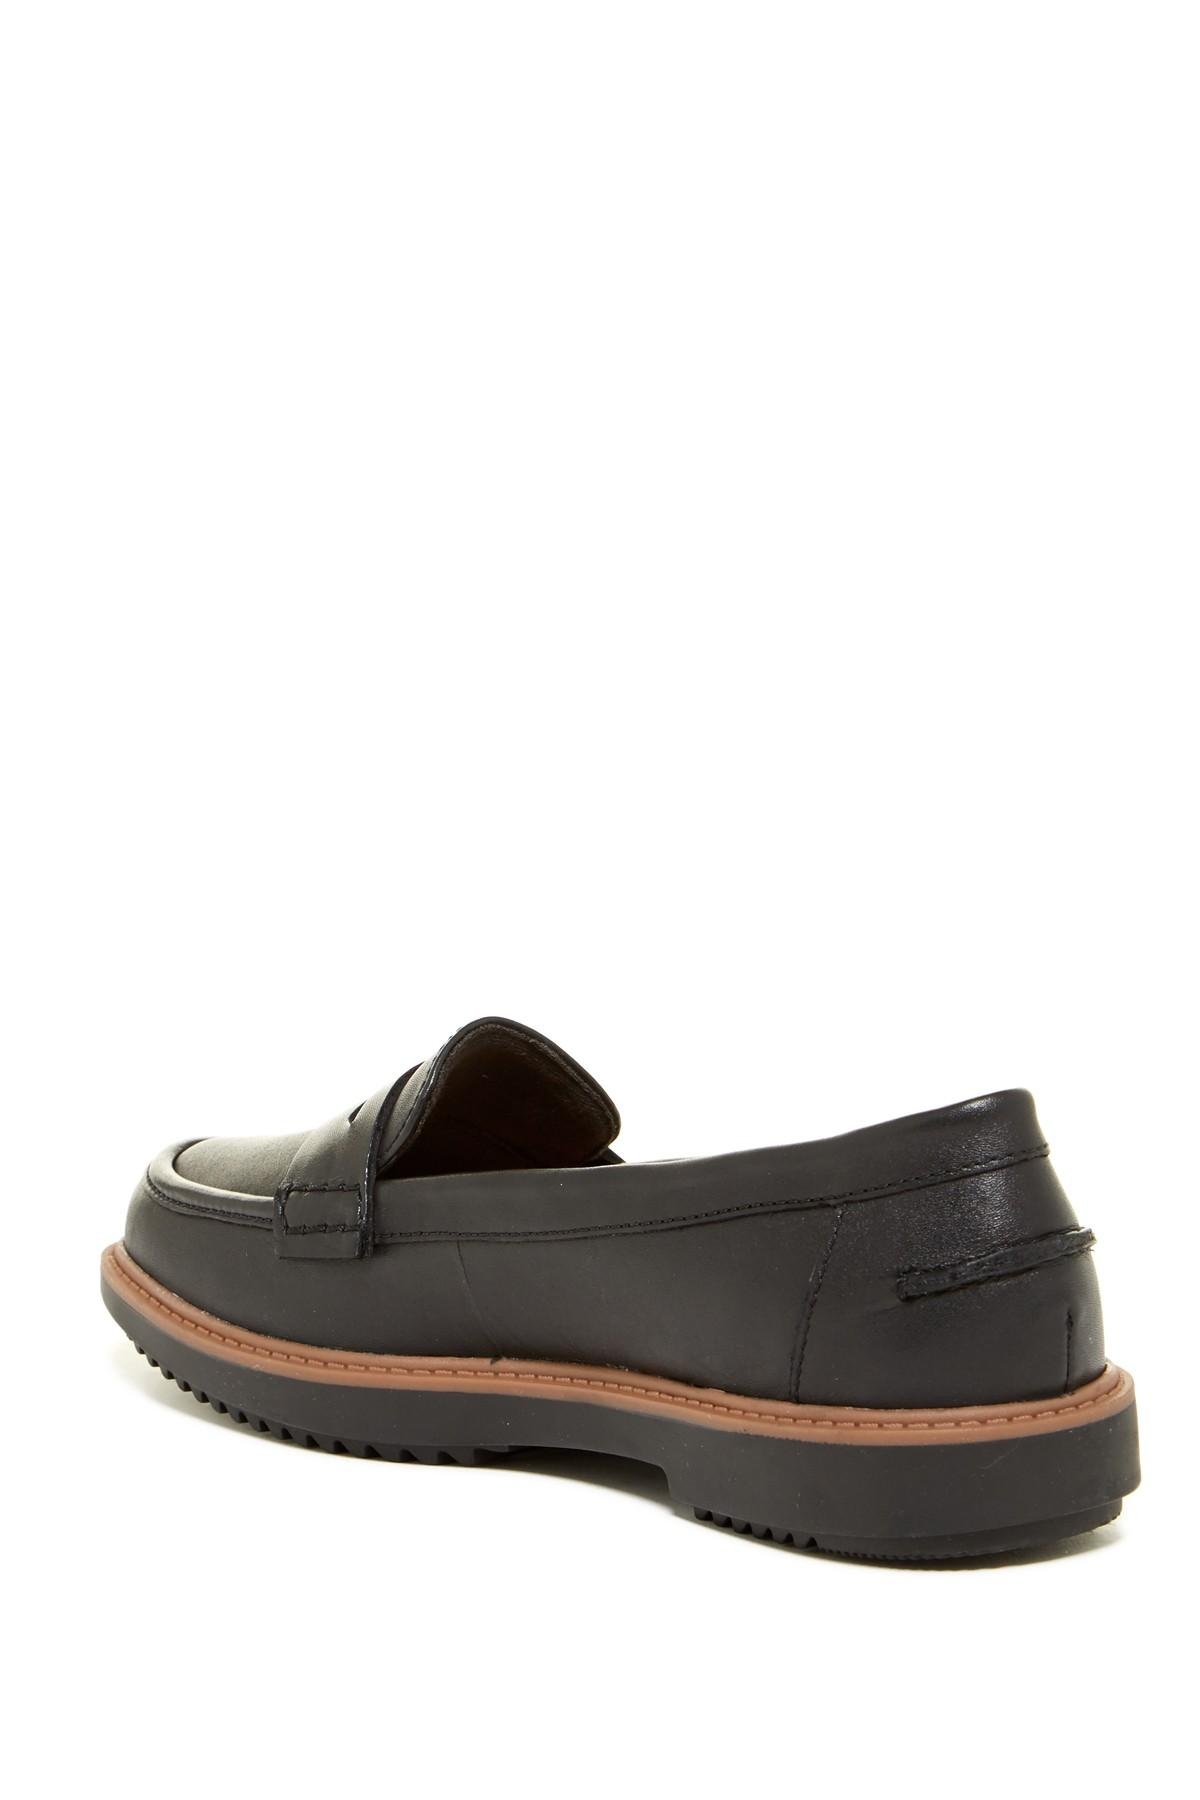 9707a4ae147 Lyst - Clarks Raisie Eletta Loafer - Wide Width Available in Black